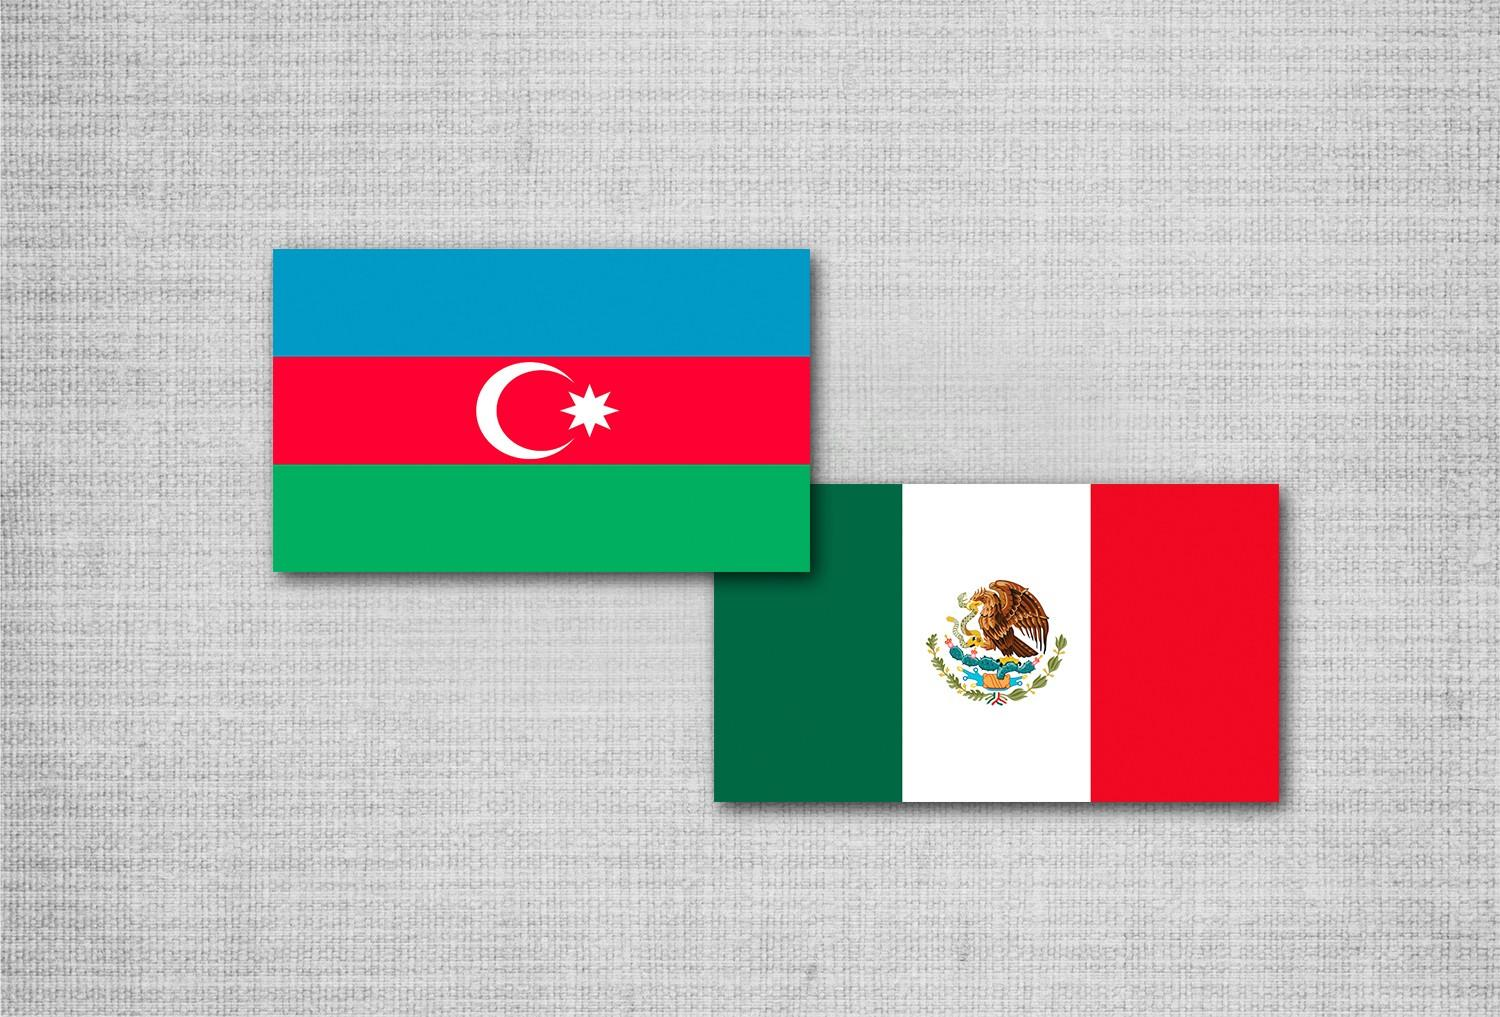 Mexico and Azerbaijan interested in enhancing cultural cooperation